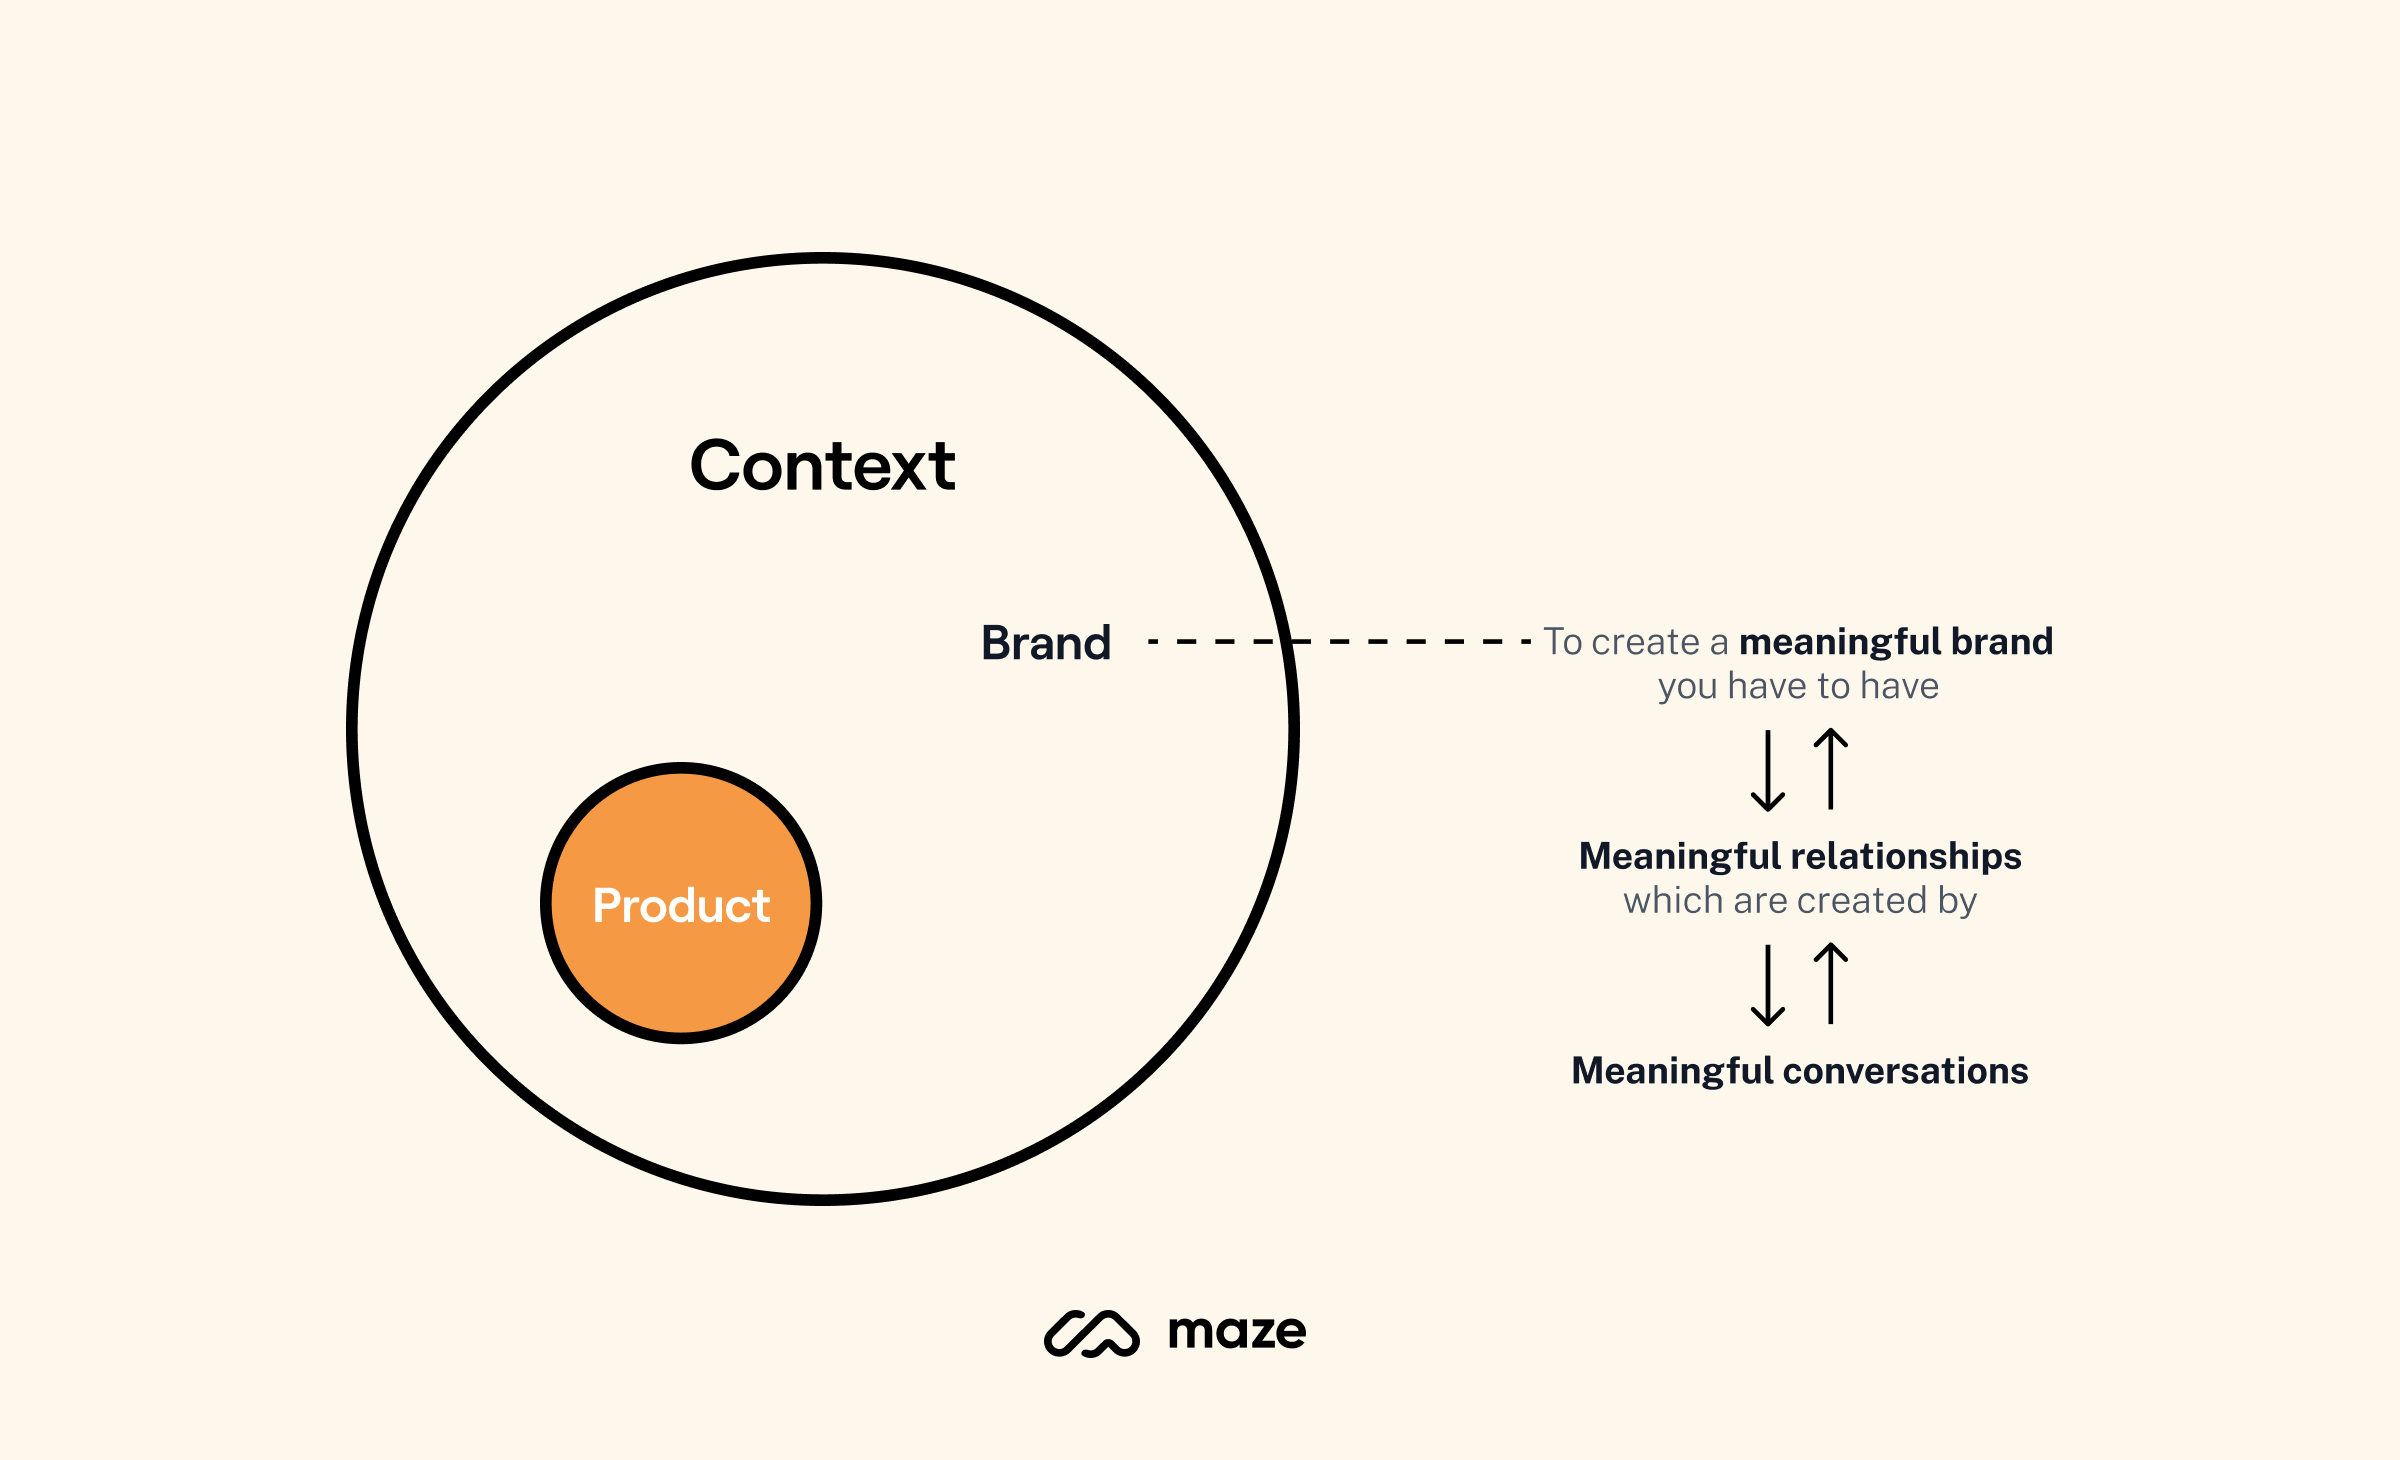 Building a meaningful brand